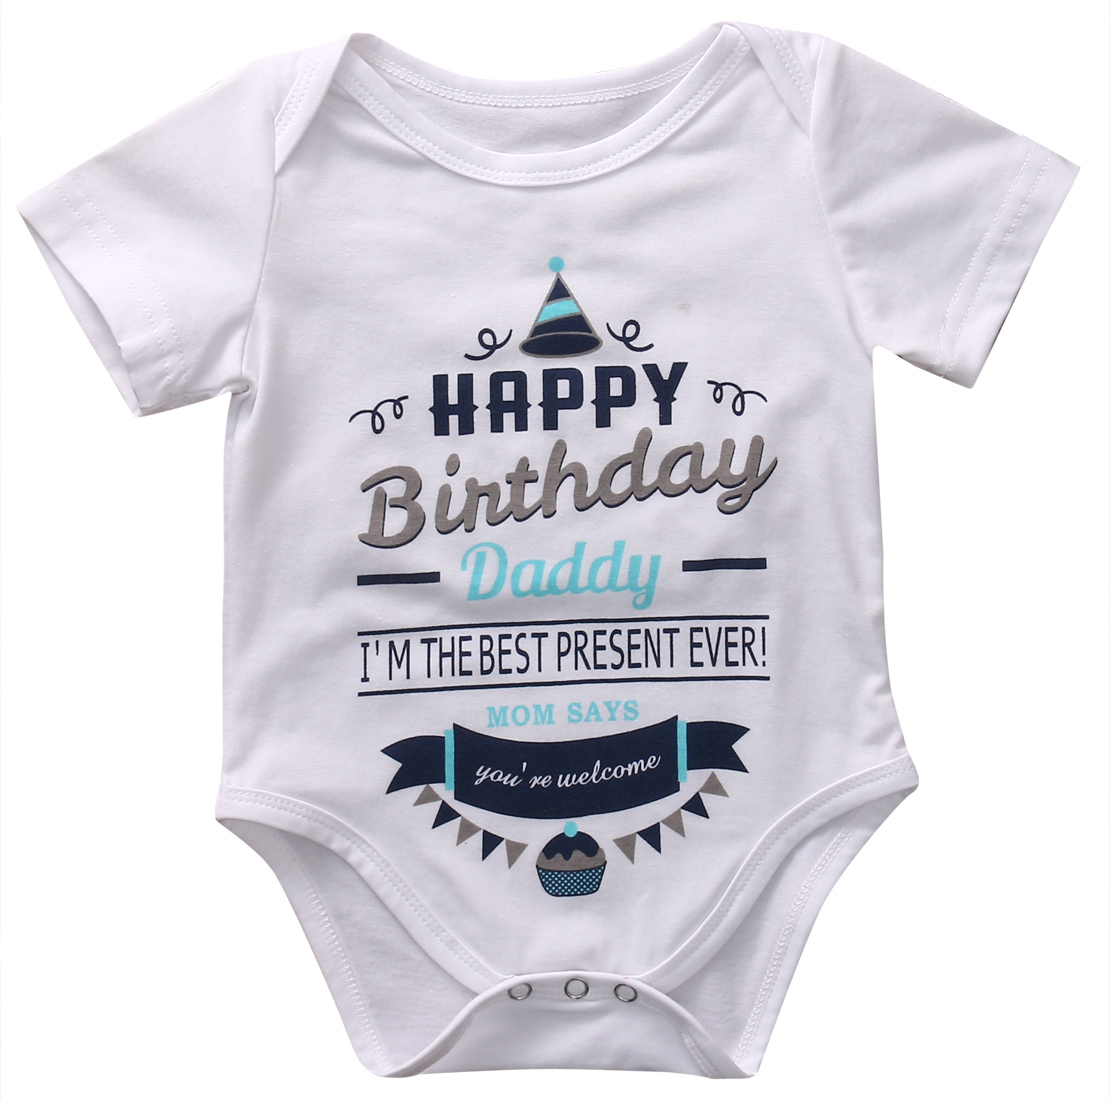 2018 Newborn Infant Baby Boy Girl   Rompers   Short Sleeve Jumpsuit Happy Birthday Party Clothes Kids Boys Girls   Romper   0-18M